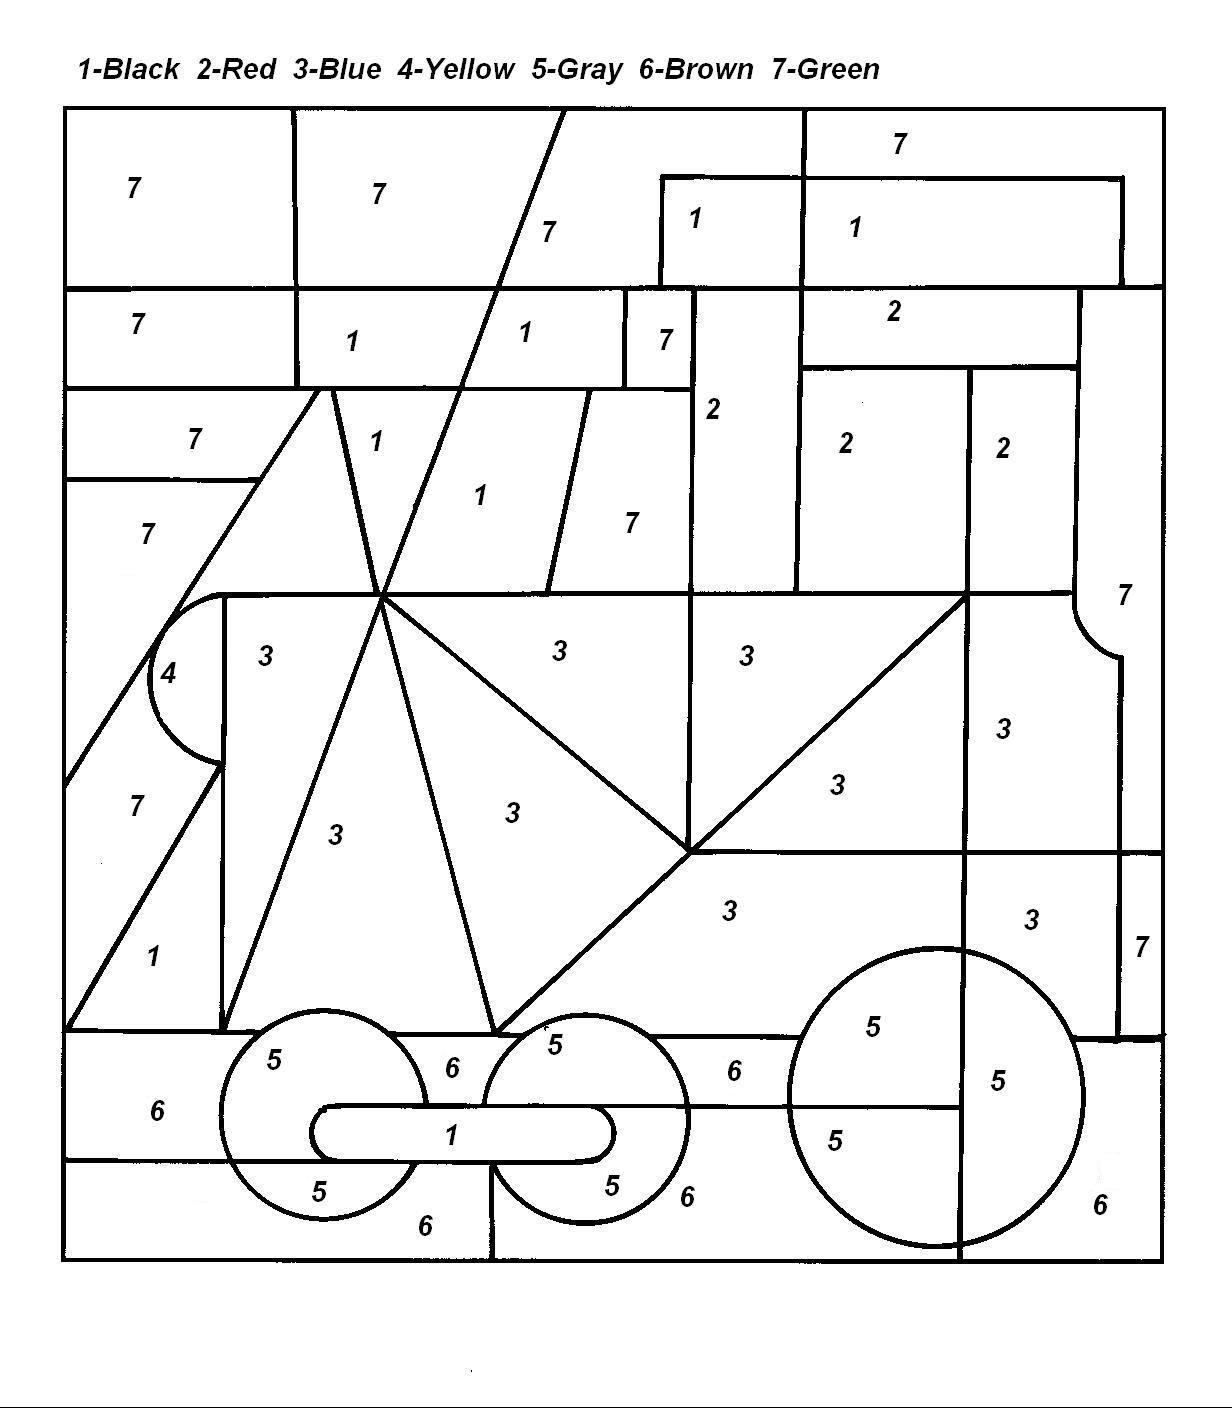 Color By Numbers Page Print Your Free Color By Numbers Page At Allkidsnetwork Com Angel Coloring Pages Barn Quilt Patterns Color By Numbers